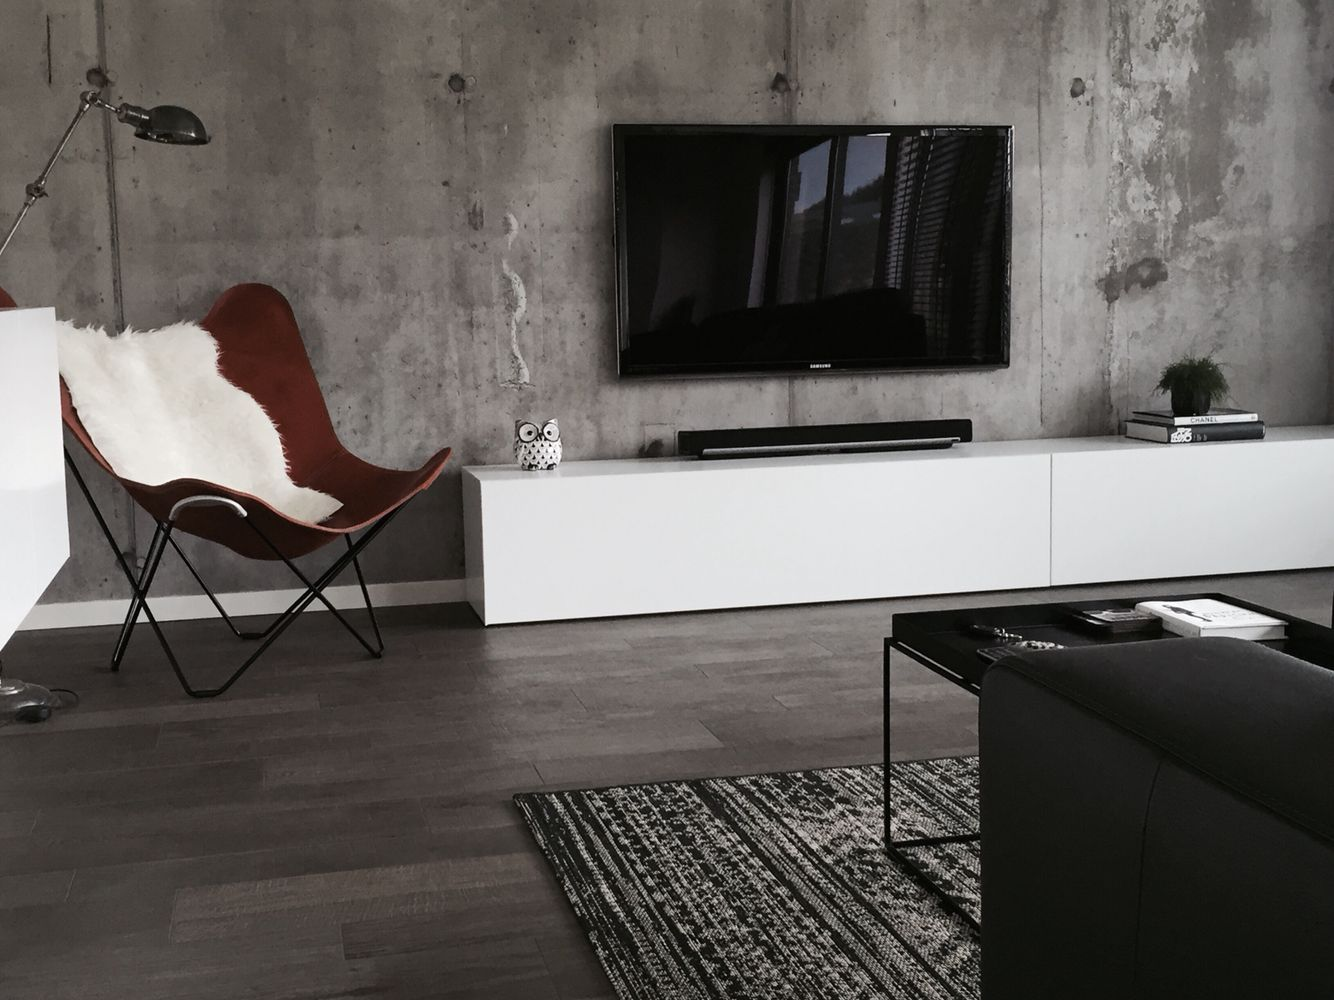 Butterfly chair mariposa polo concrete wall hay tray - Betonwand wohnzimmer ...